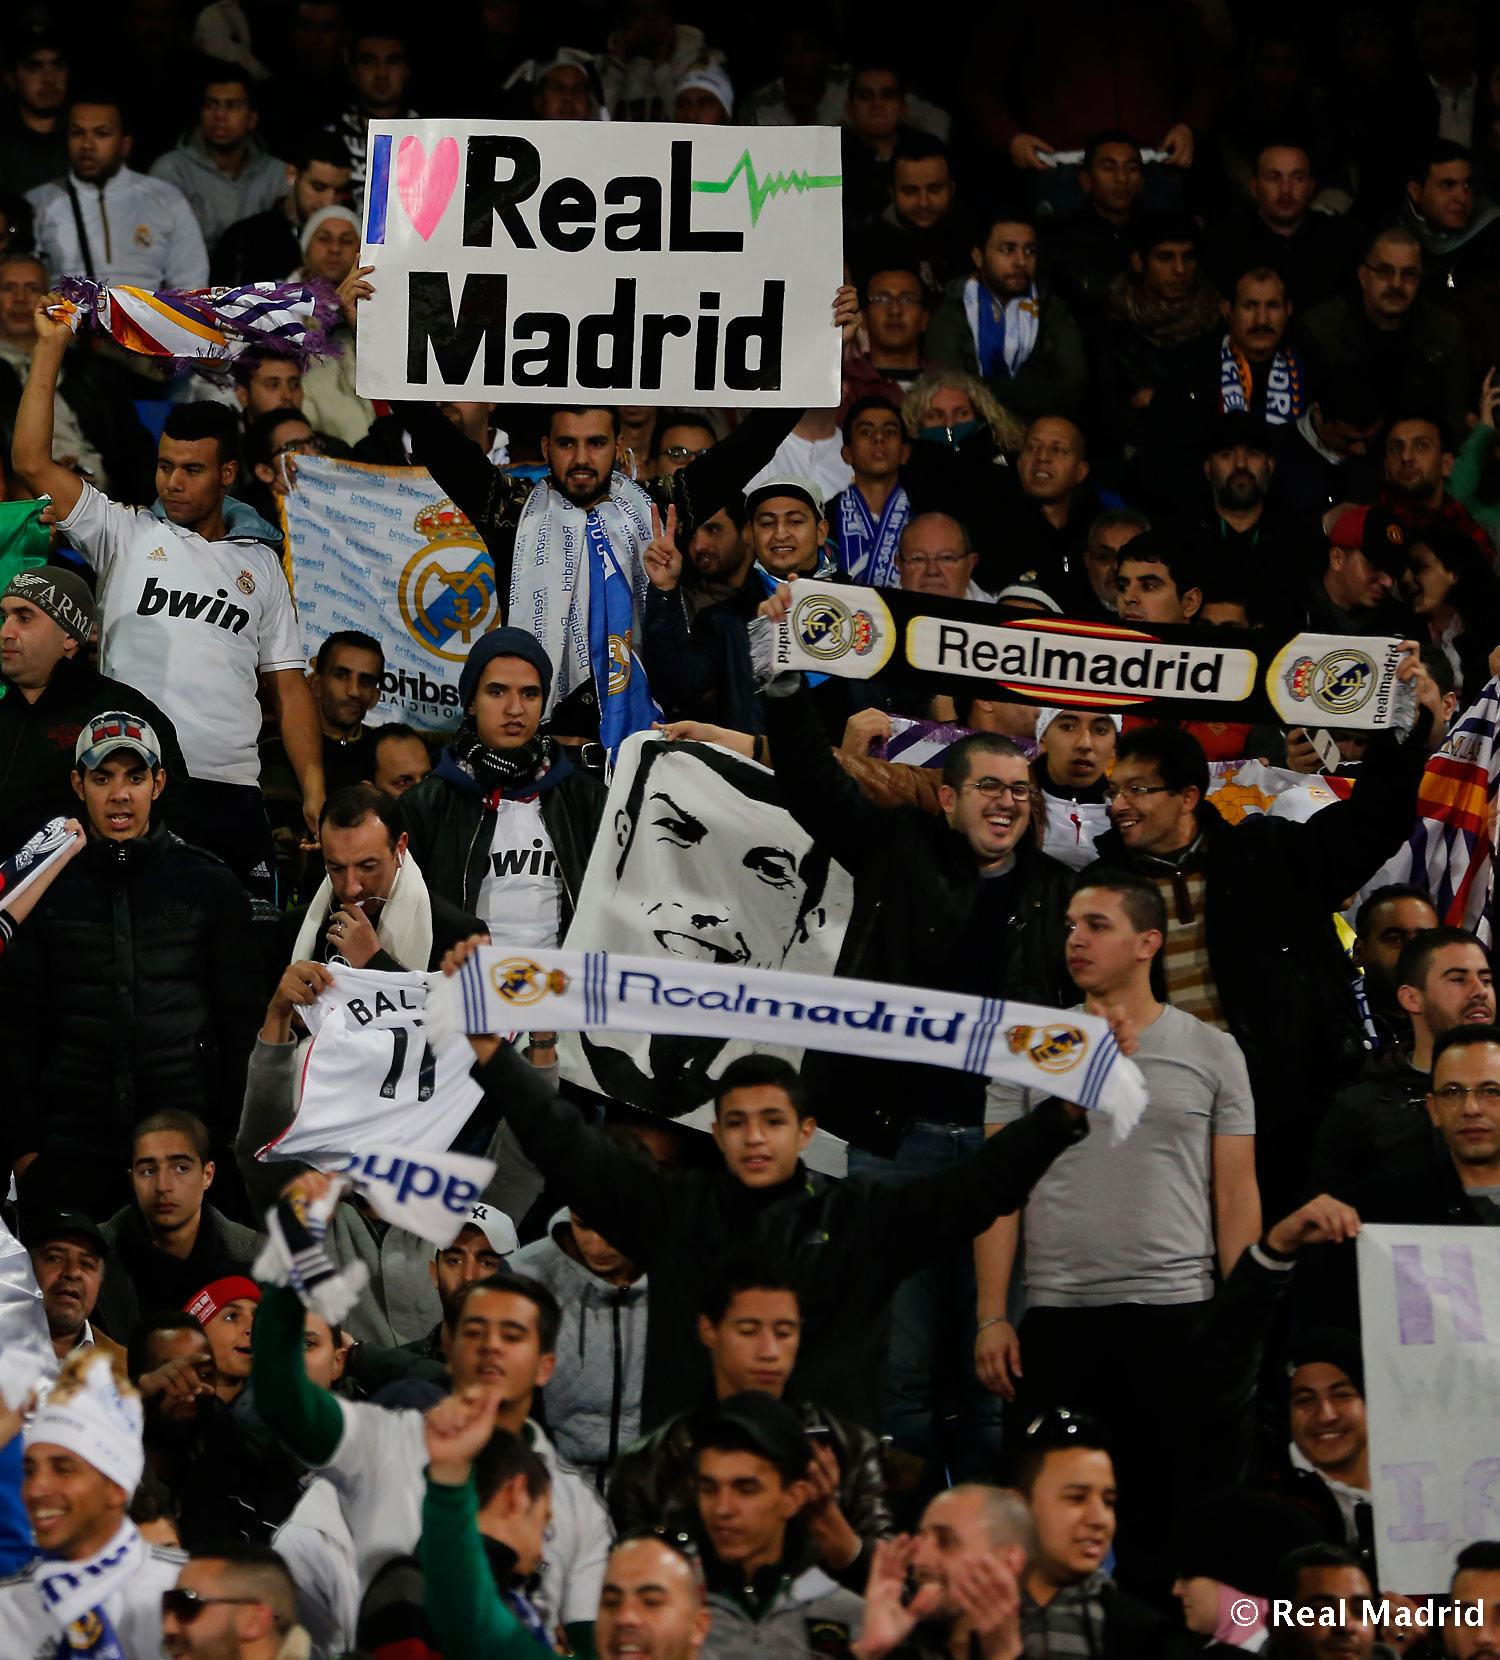 Real Madrid - Cruz Azul - Real Madrid - 16-12-2014